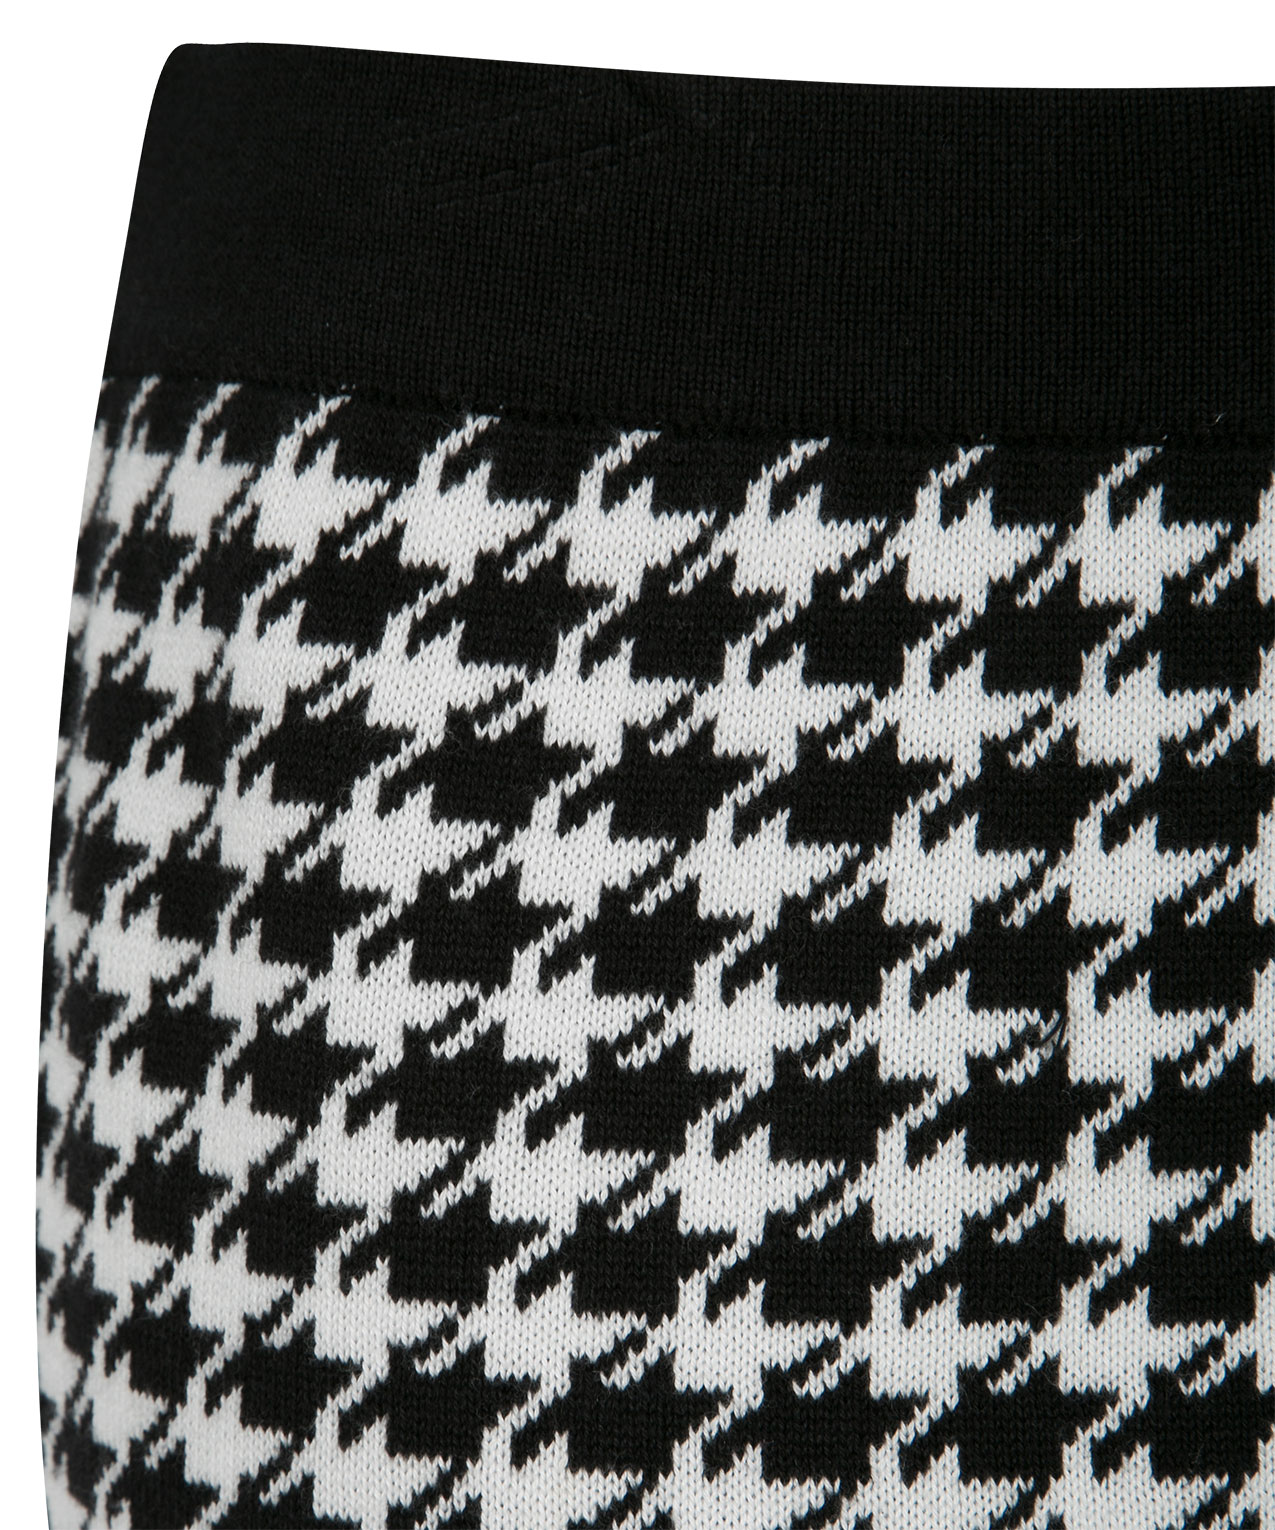 Houndstooth Knitting Pattern : Houndstooth Sweater Knit Skirt Rickis